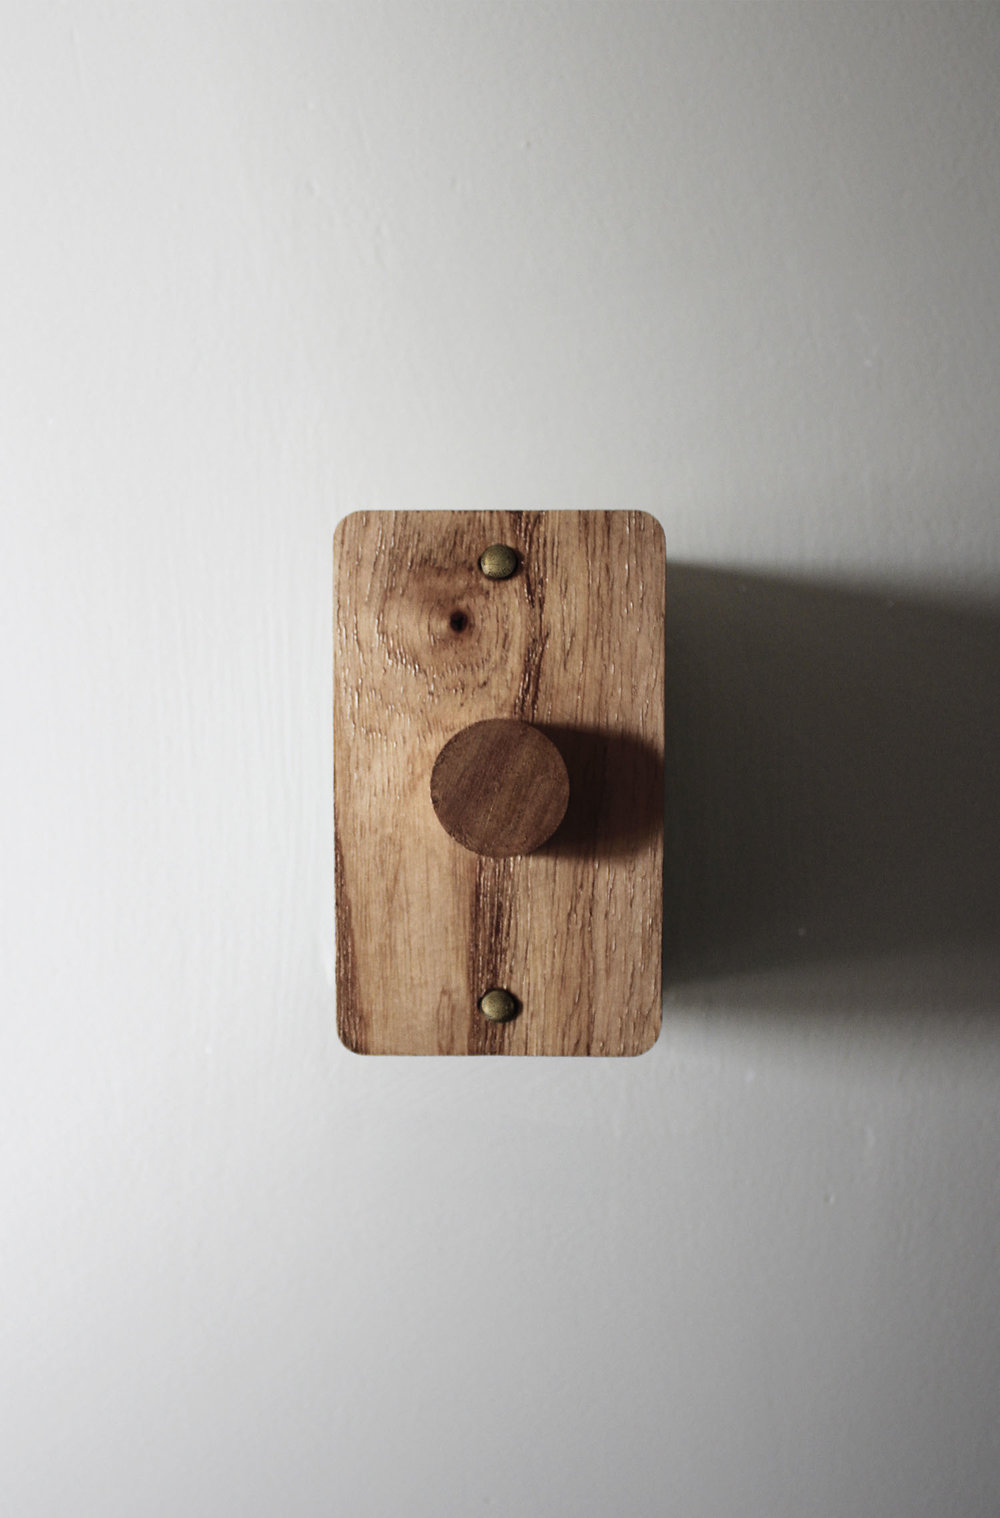 Wooden light switch detail | Carbono Atelier